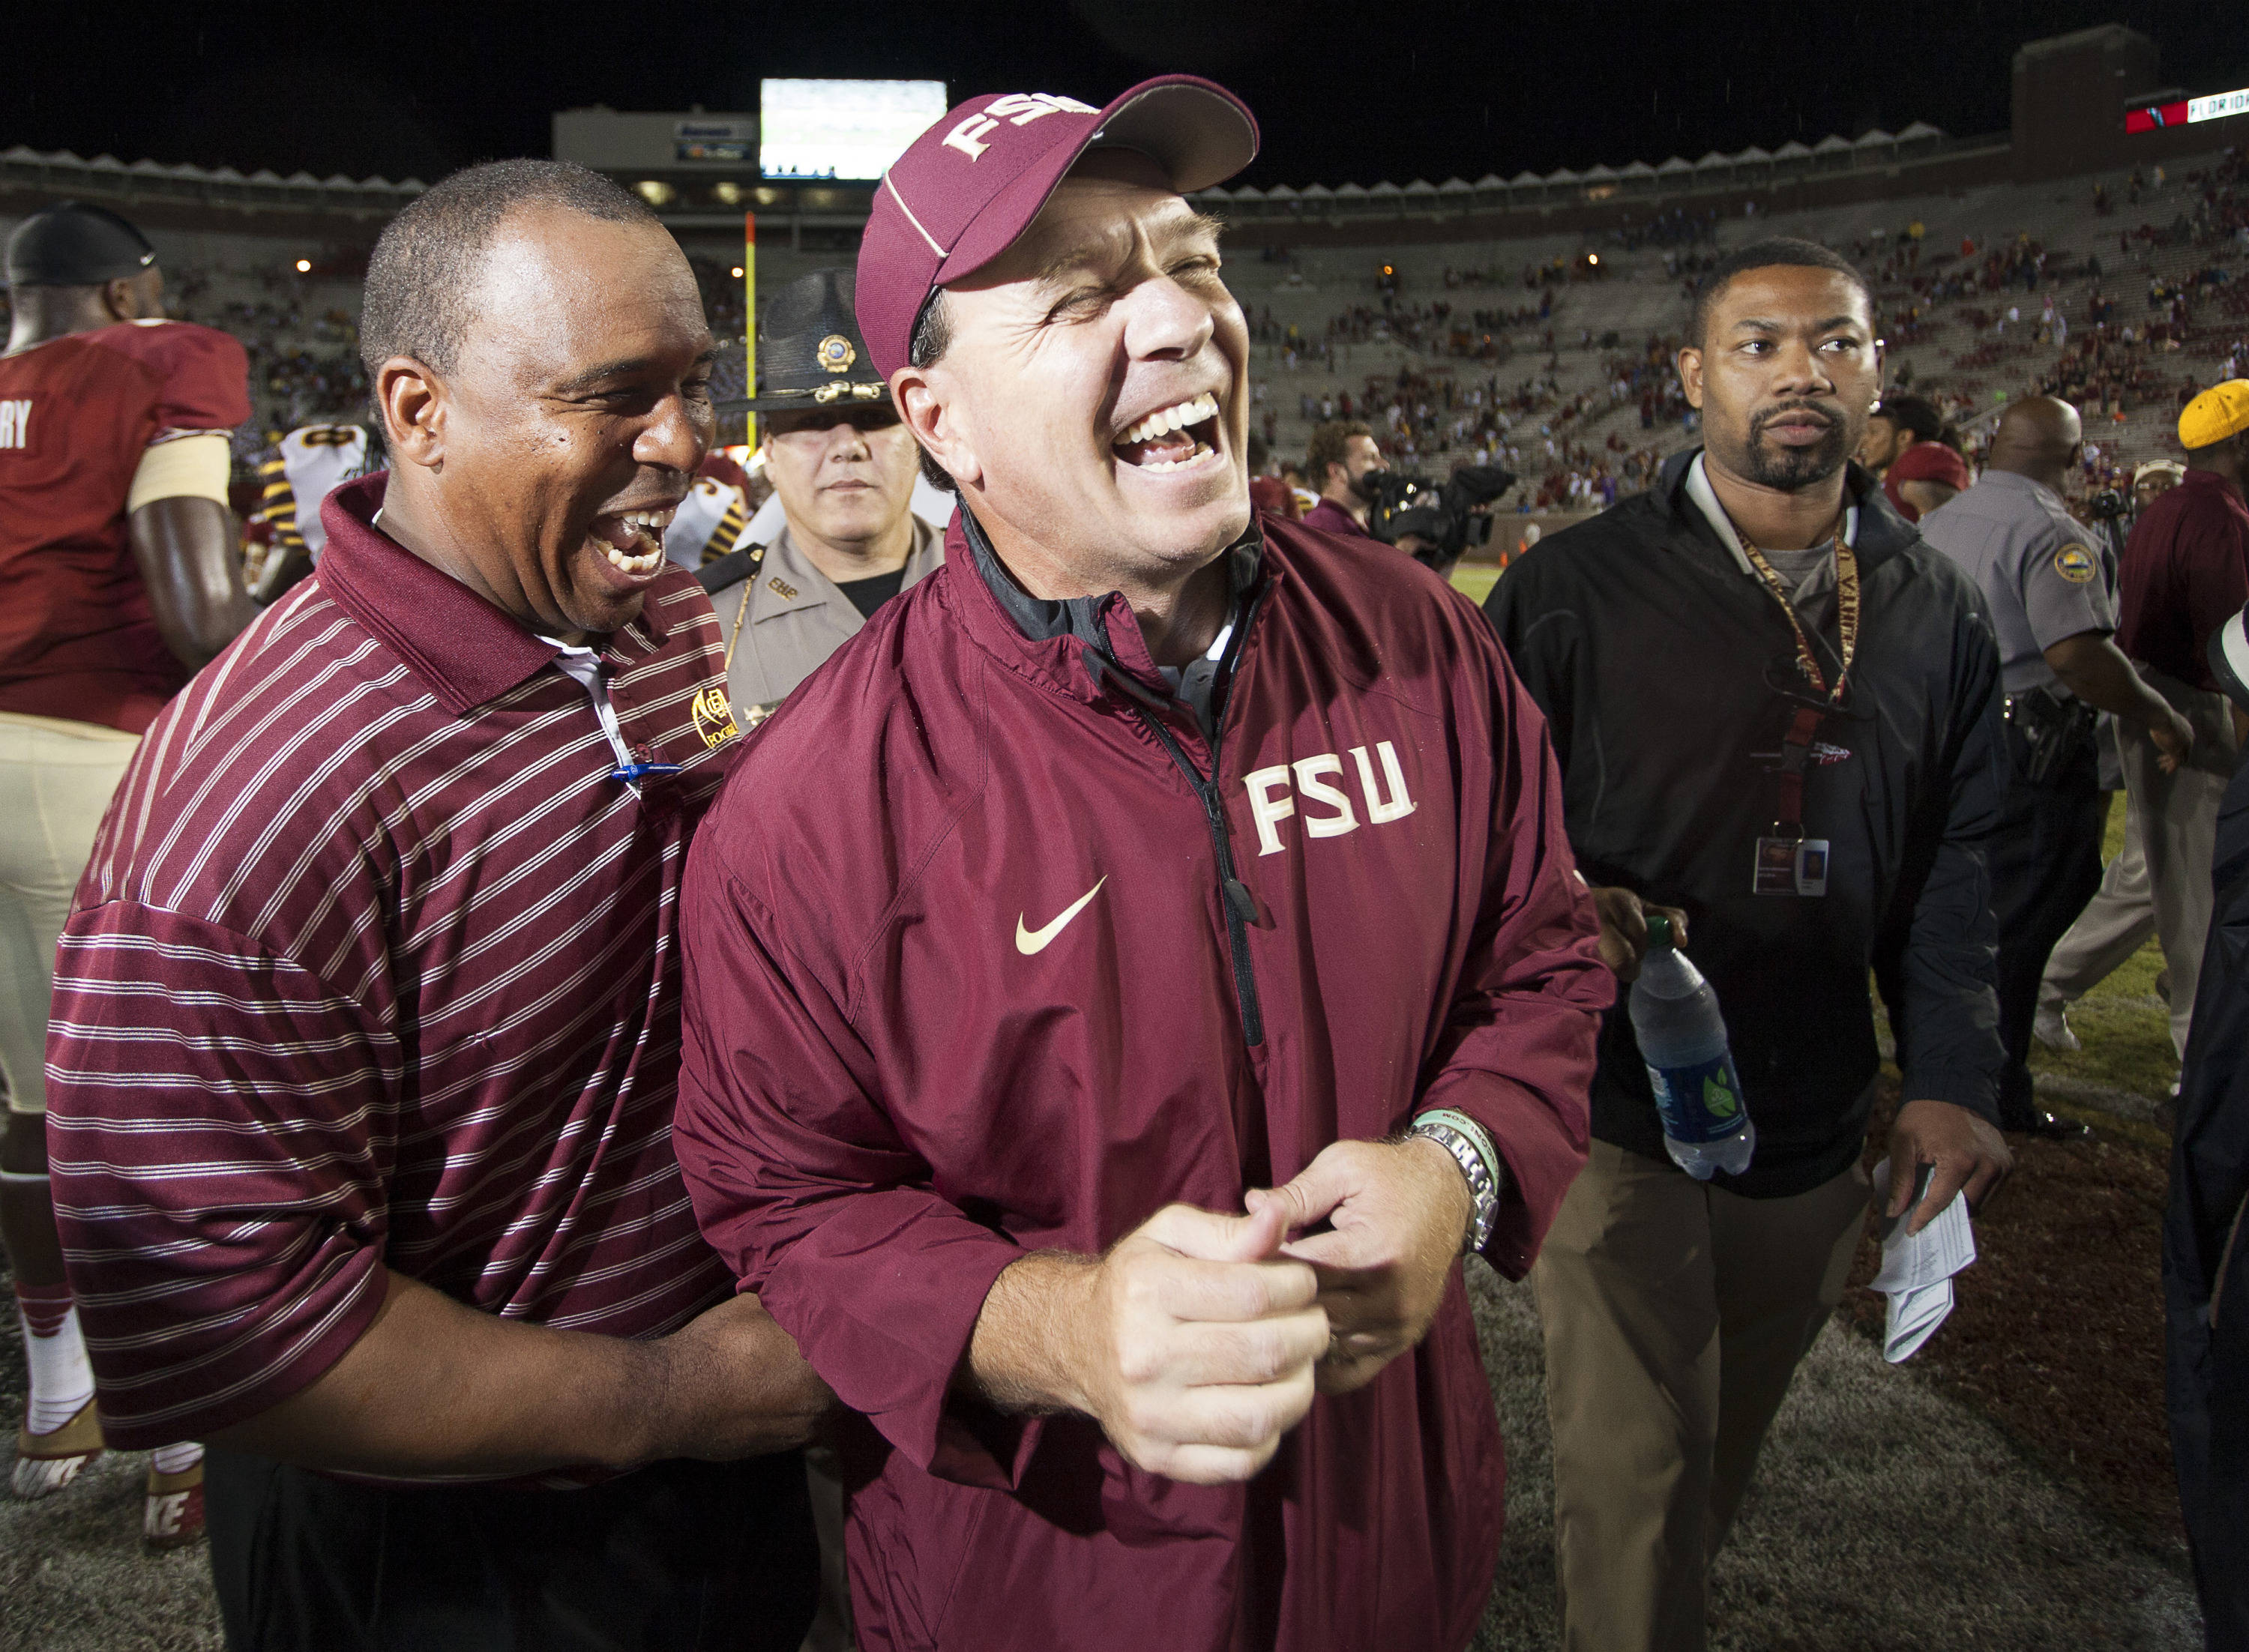 Jimbo Fisher jokes with a Bethune-Cookman coach after FSU Football's 54-6 win over Bethune-Cookman on September 21, 2013 in Tallahassee, Fla